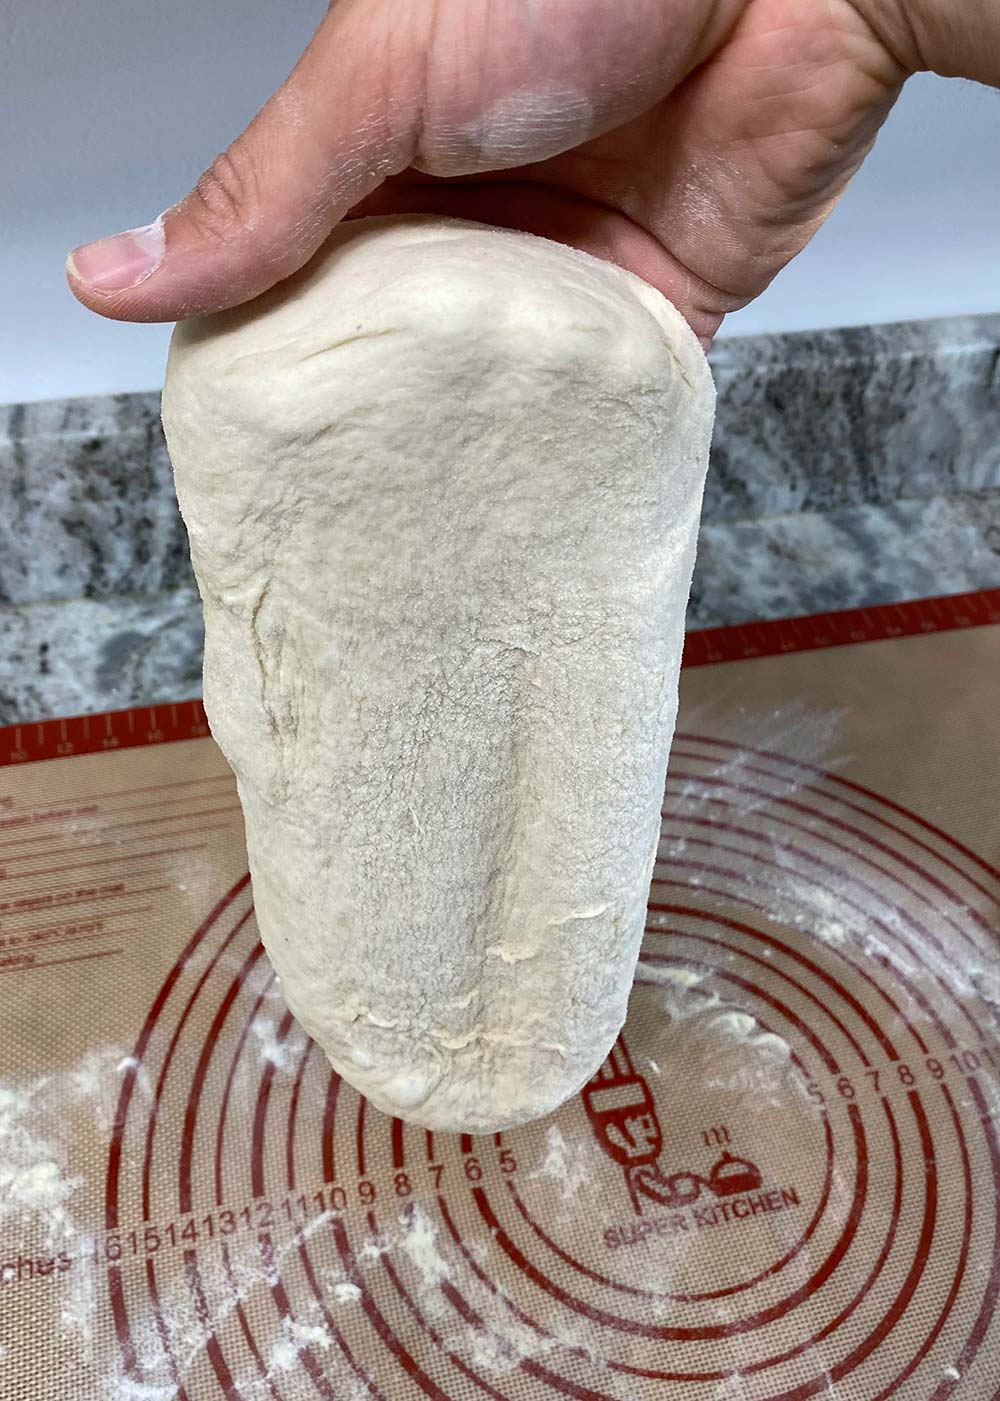 Letting pizza dough form